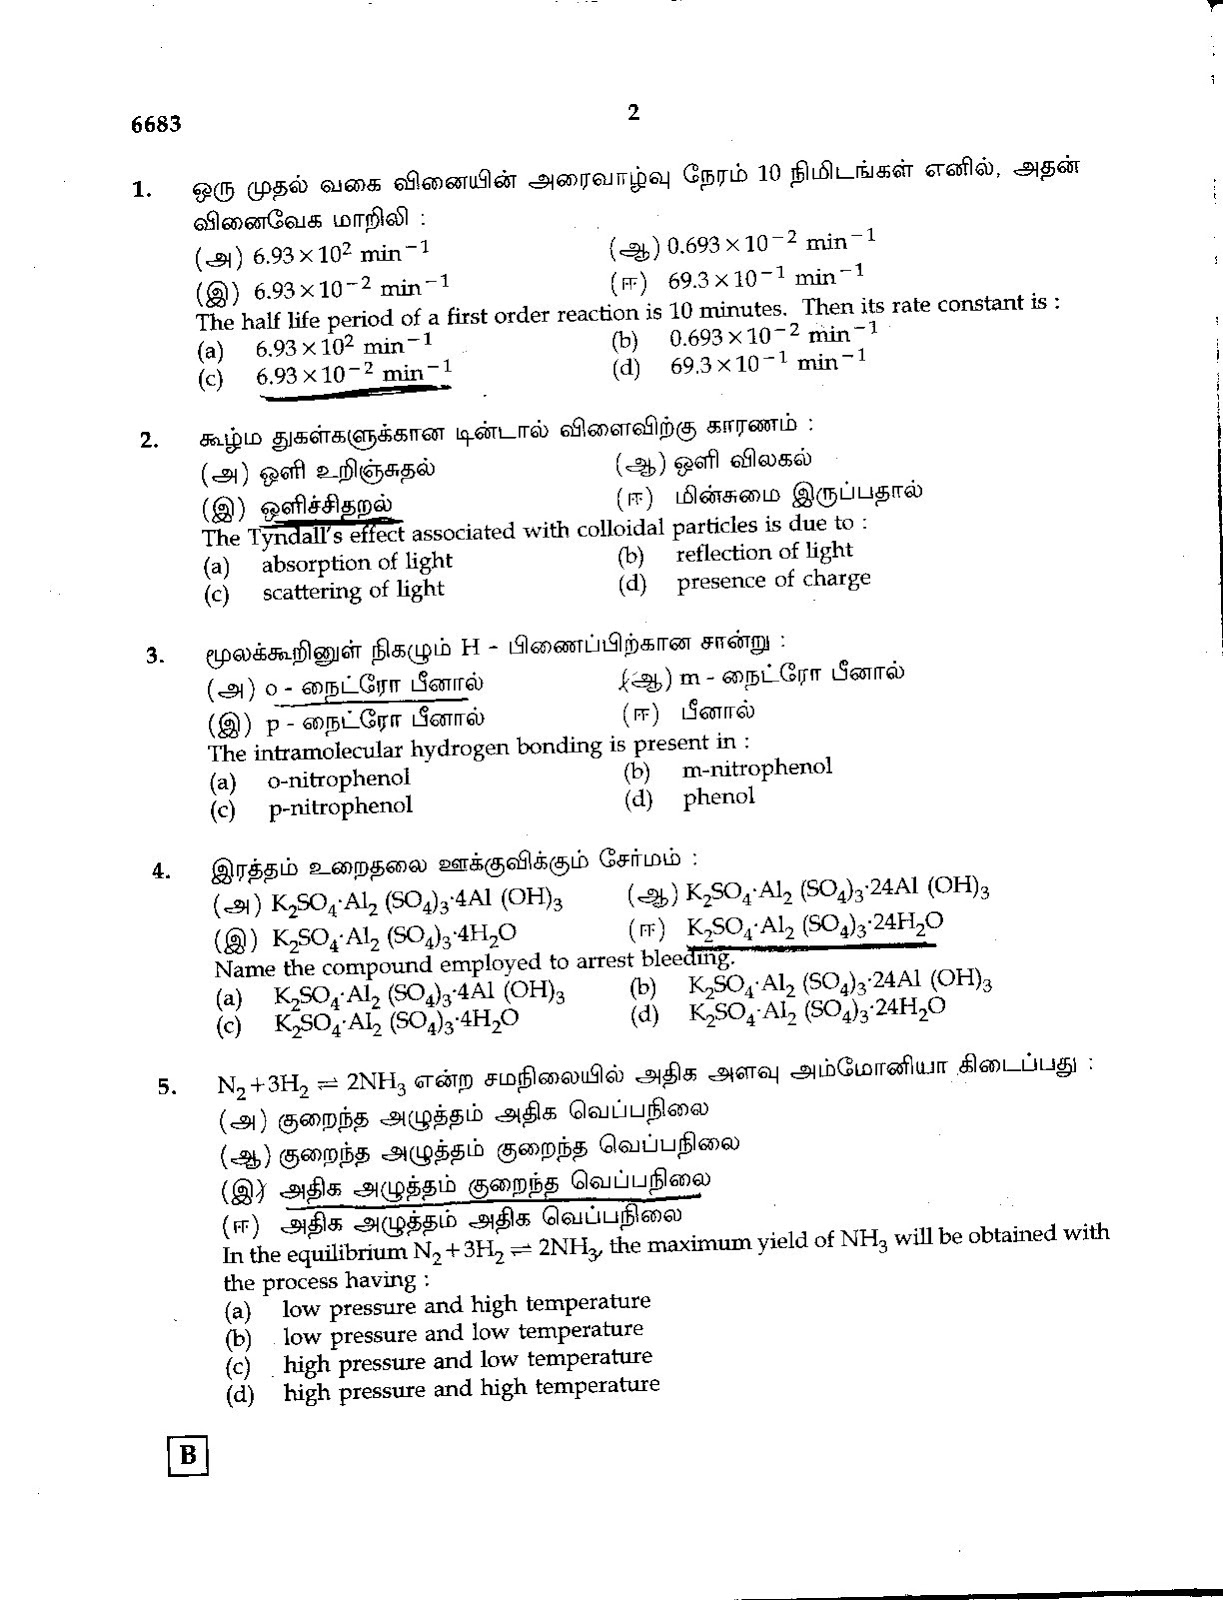 plus two march 2017 chemistry question paper answer key